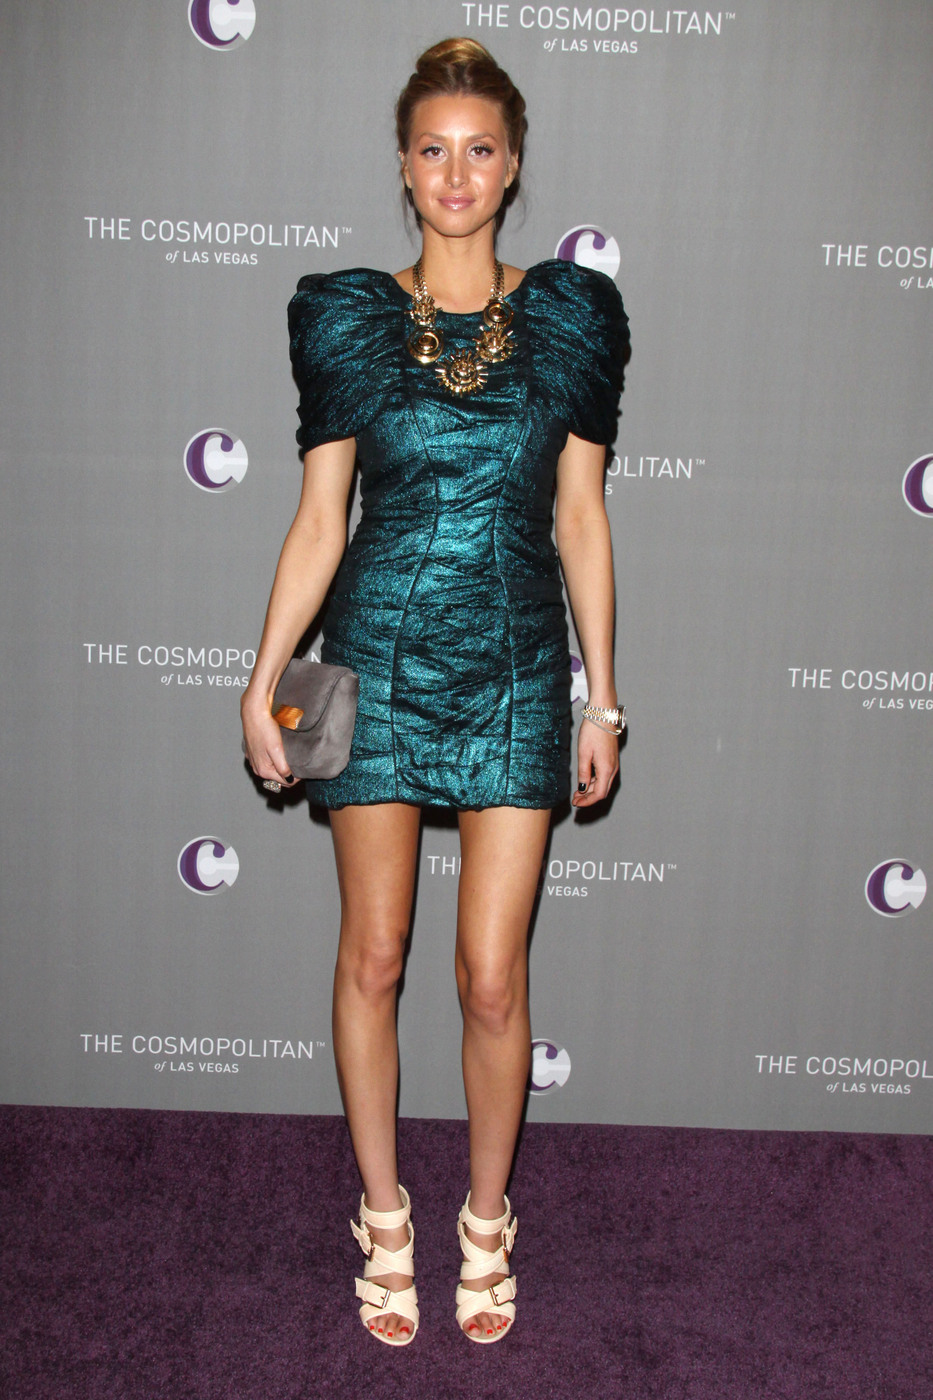 Whitney Port at The Cosmopolitan hotel New Year's Eve celebration in Las Vegas